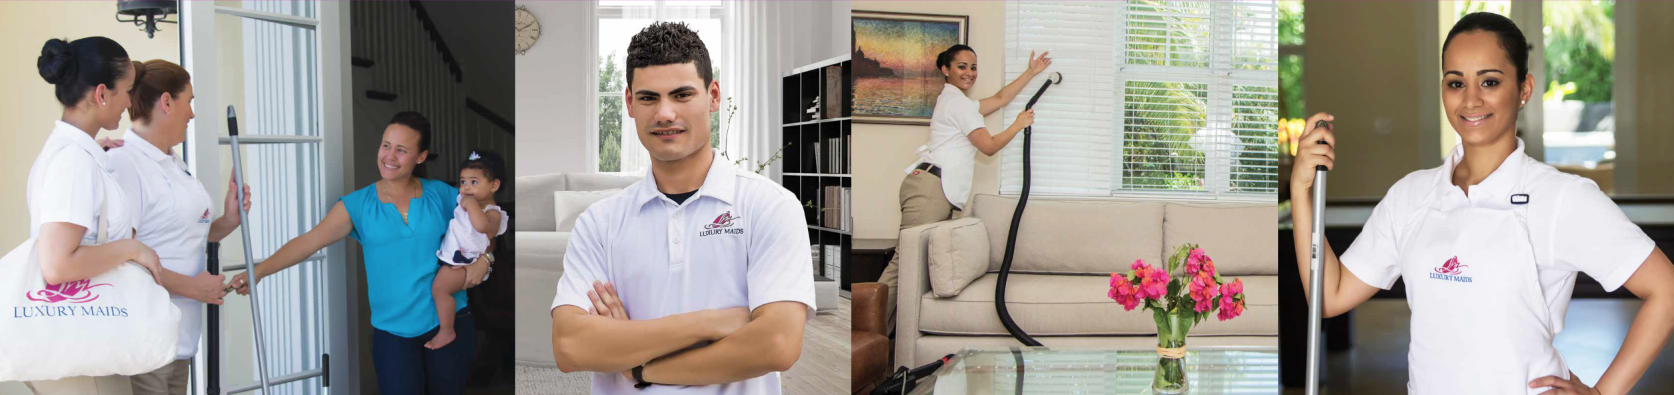 Luxury Maids | Palm Beach, Florida Maid Services